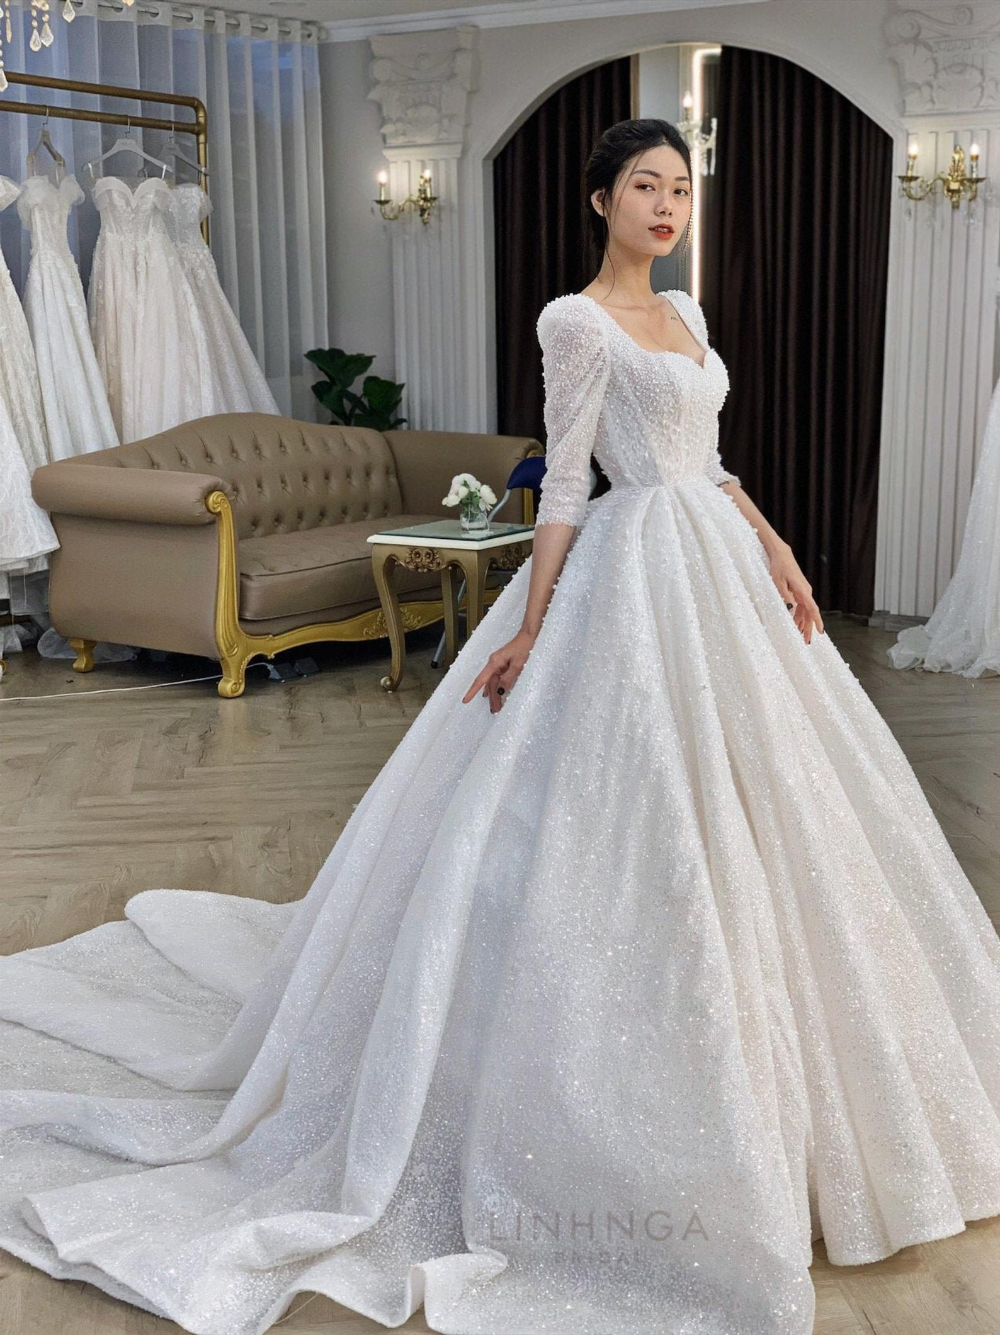 Long Sleeves Ball Gown Wedding Dress Luxury Sweet Heart Etsy In 2020 Long Sleeve Ball Gown Wedding Dress White Bridal Dresses Ball Dresses